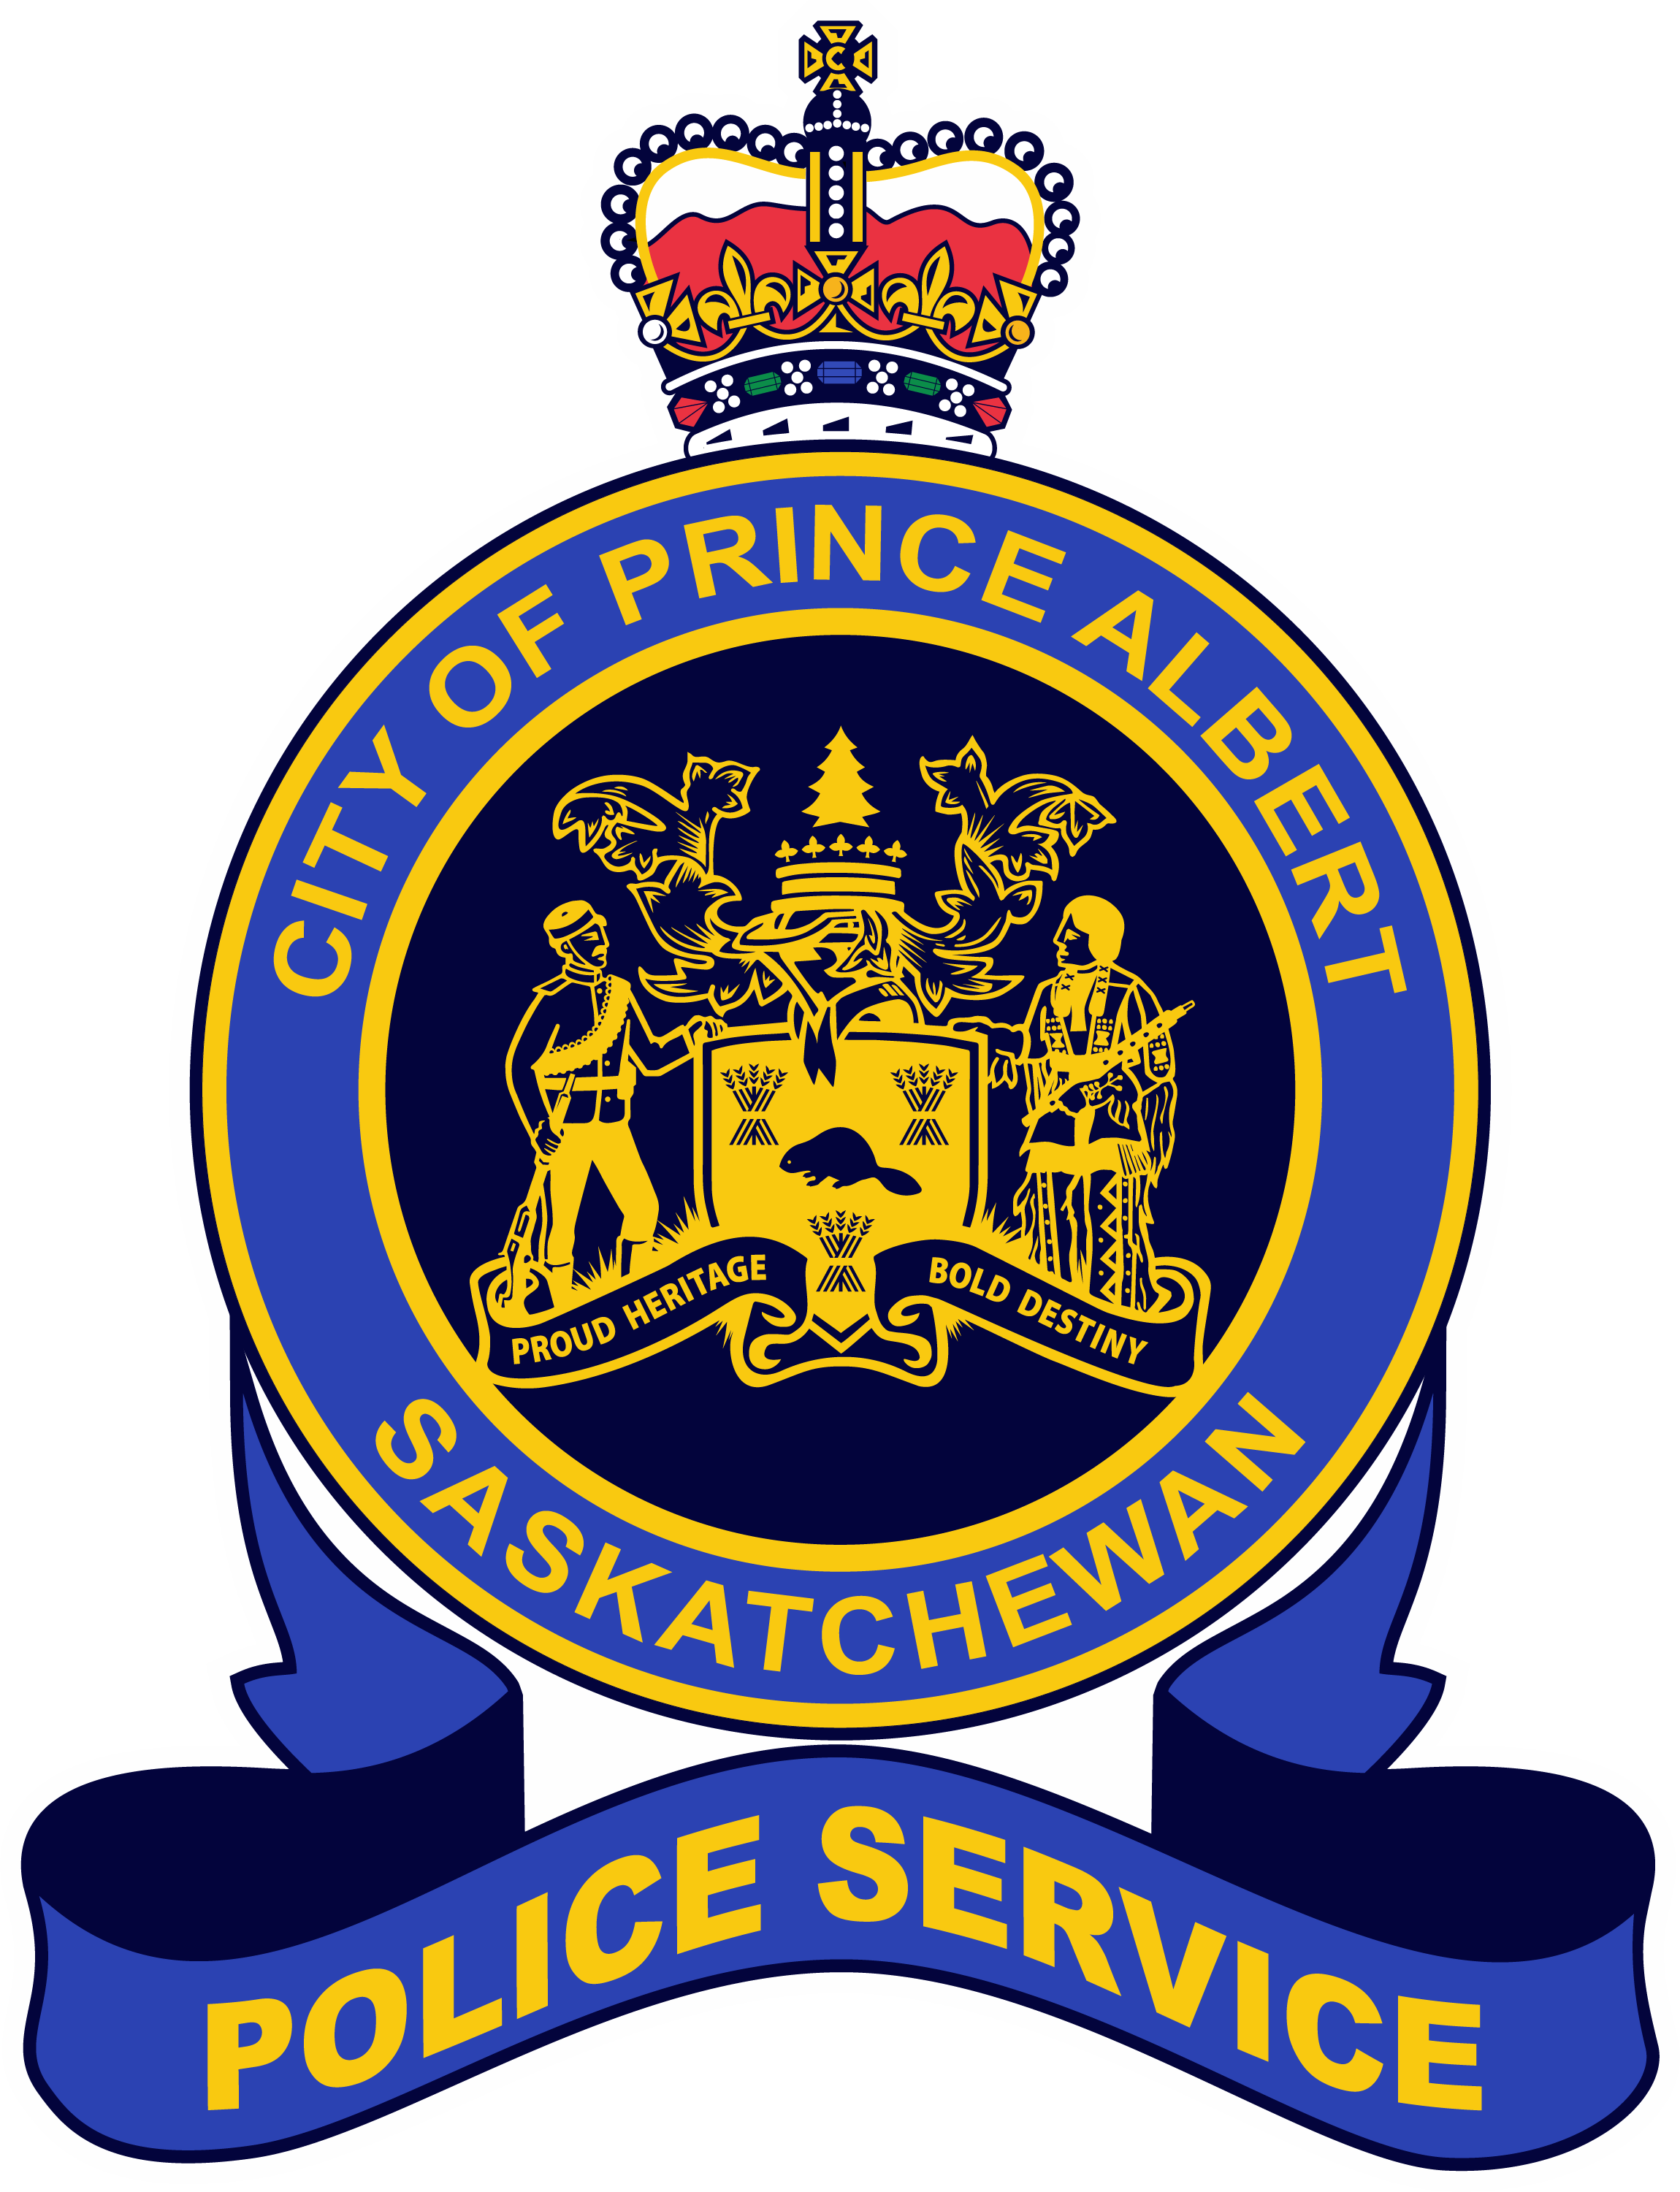 Media Release - Prince Albert Police Members Recognized for Efforts to Stop Impaired Driving